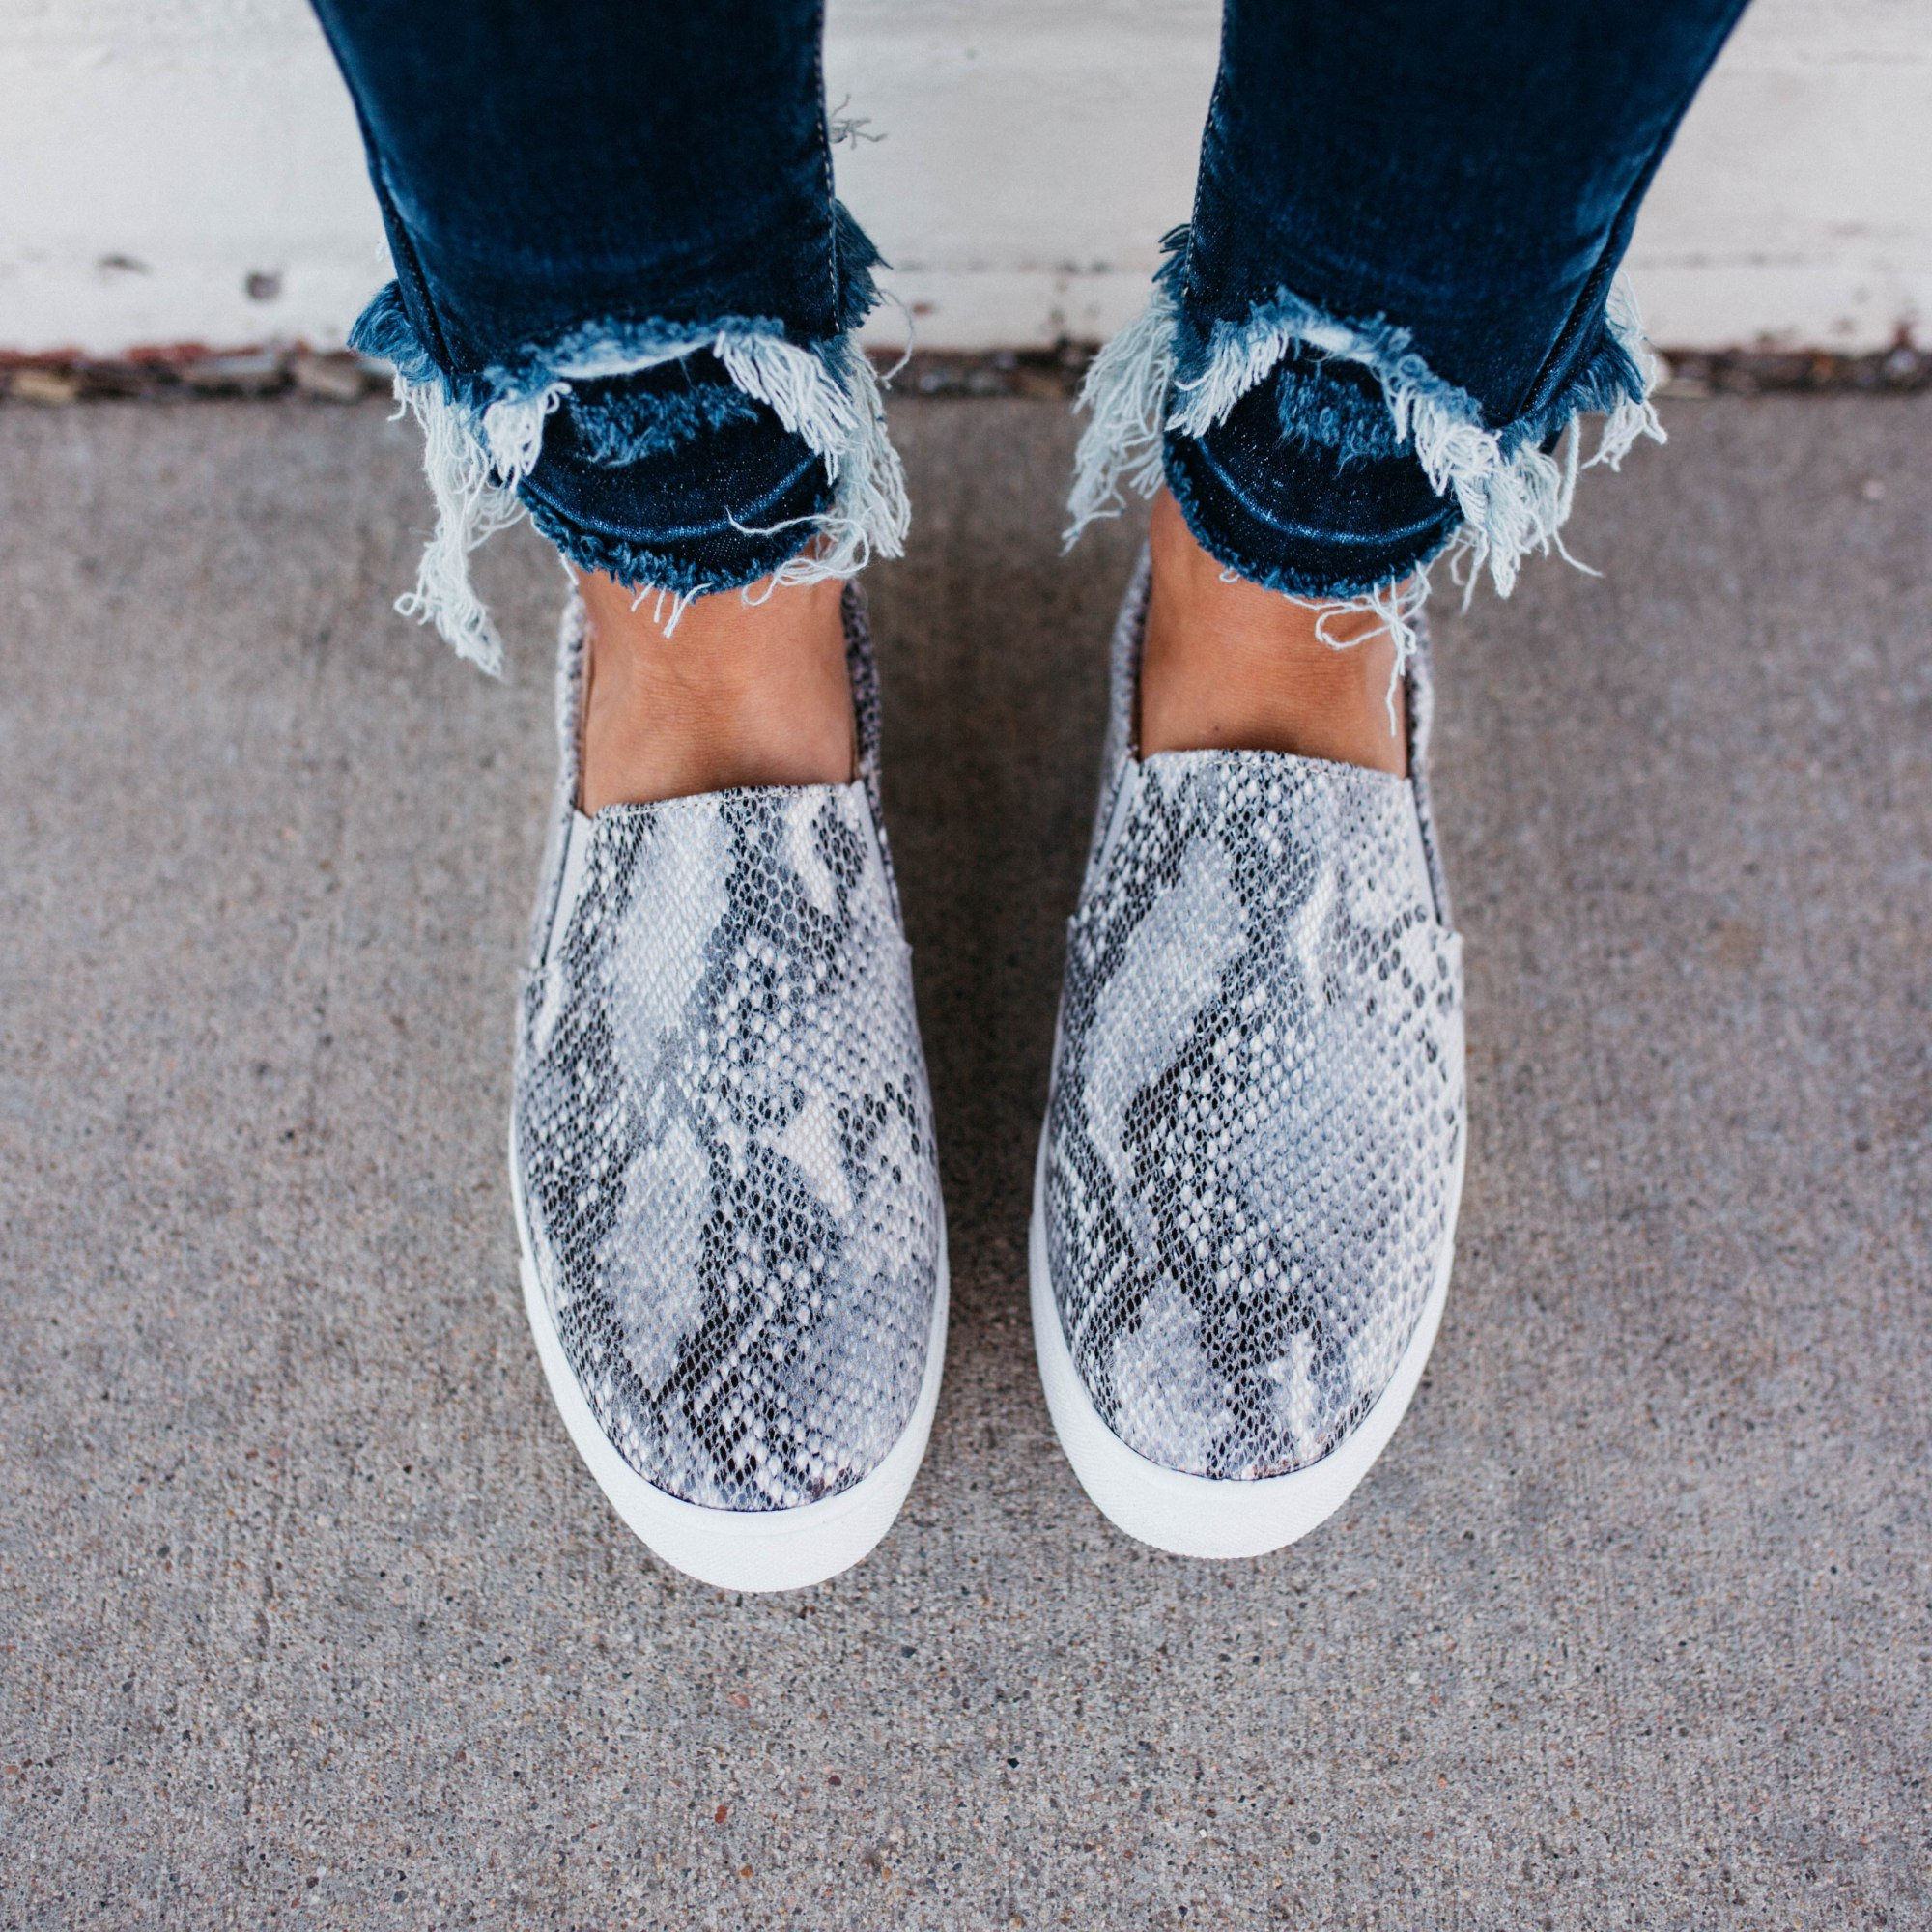 Women's Soda Brand Python Snakeskin Slip-on Sneaker Shoe